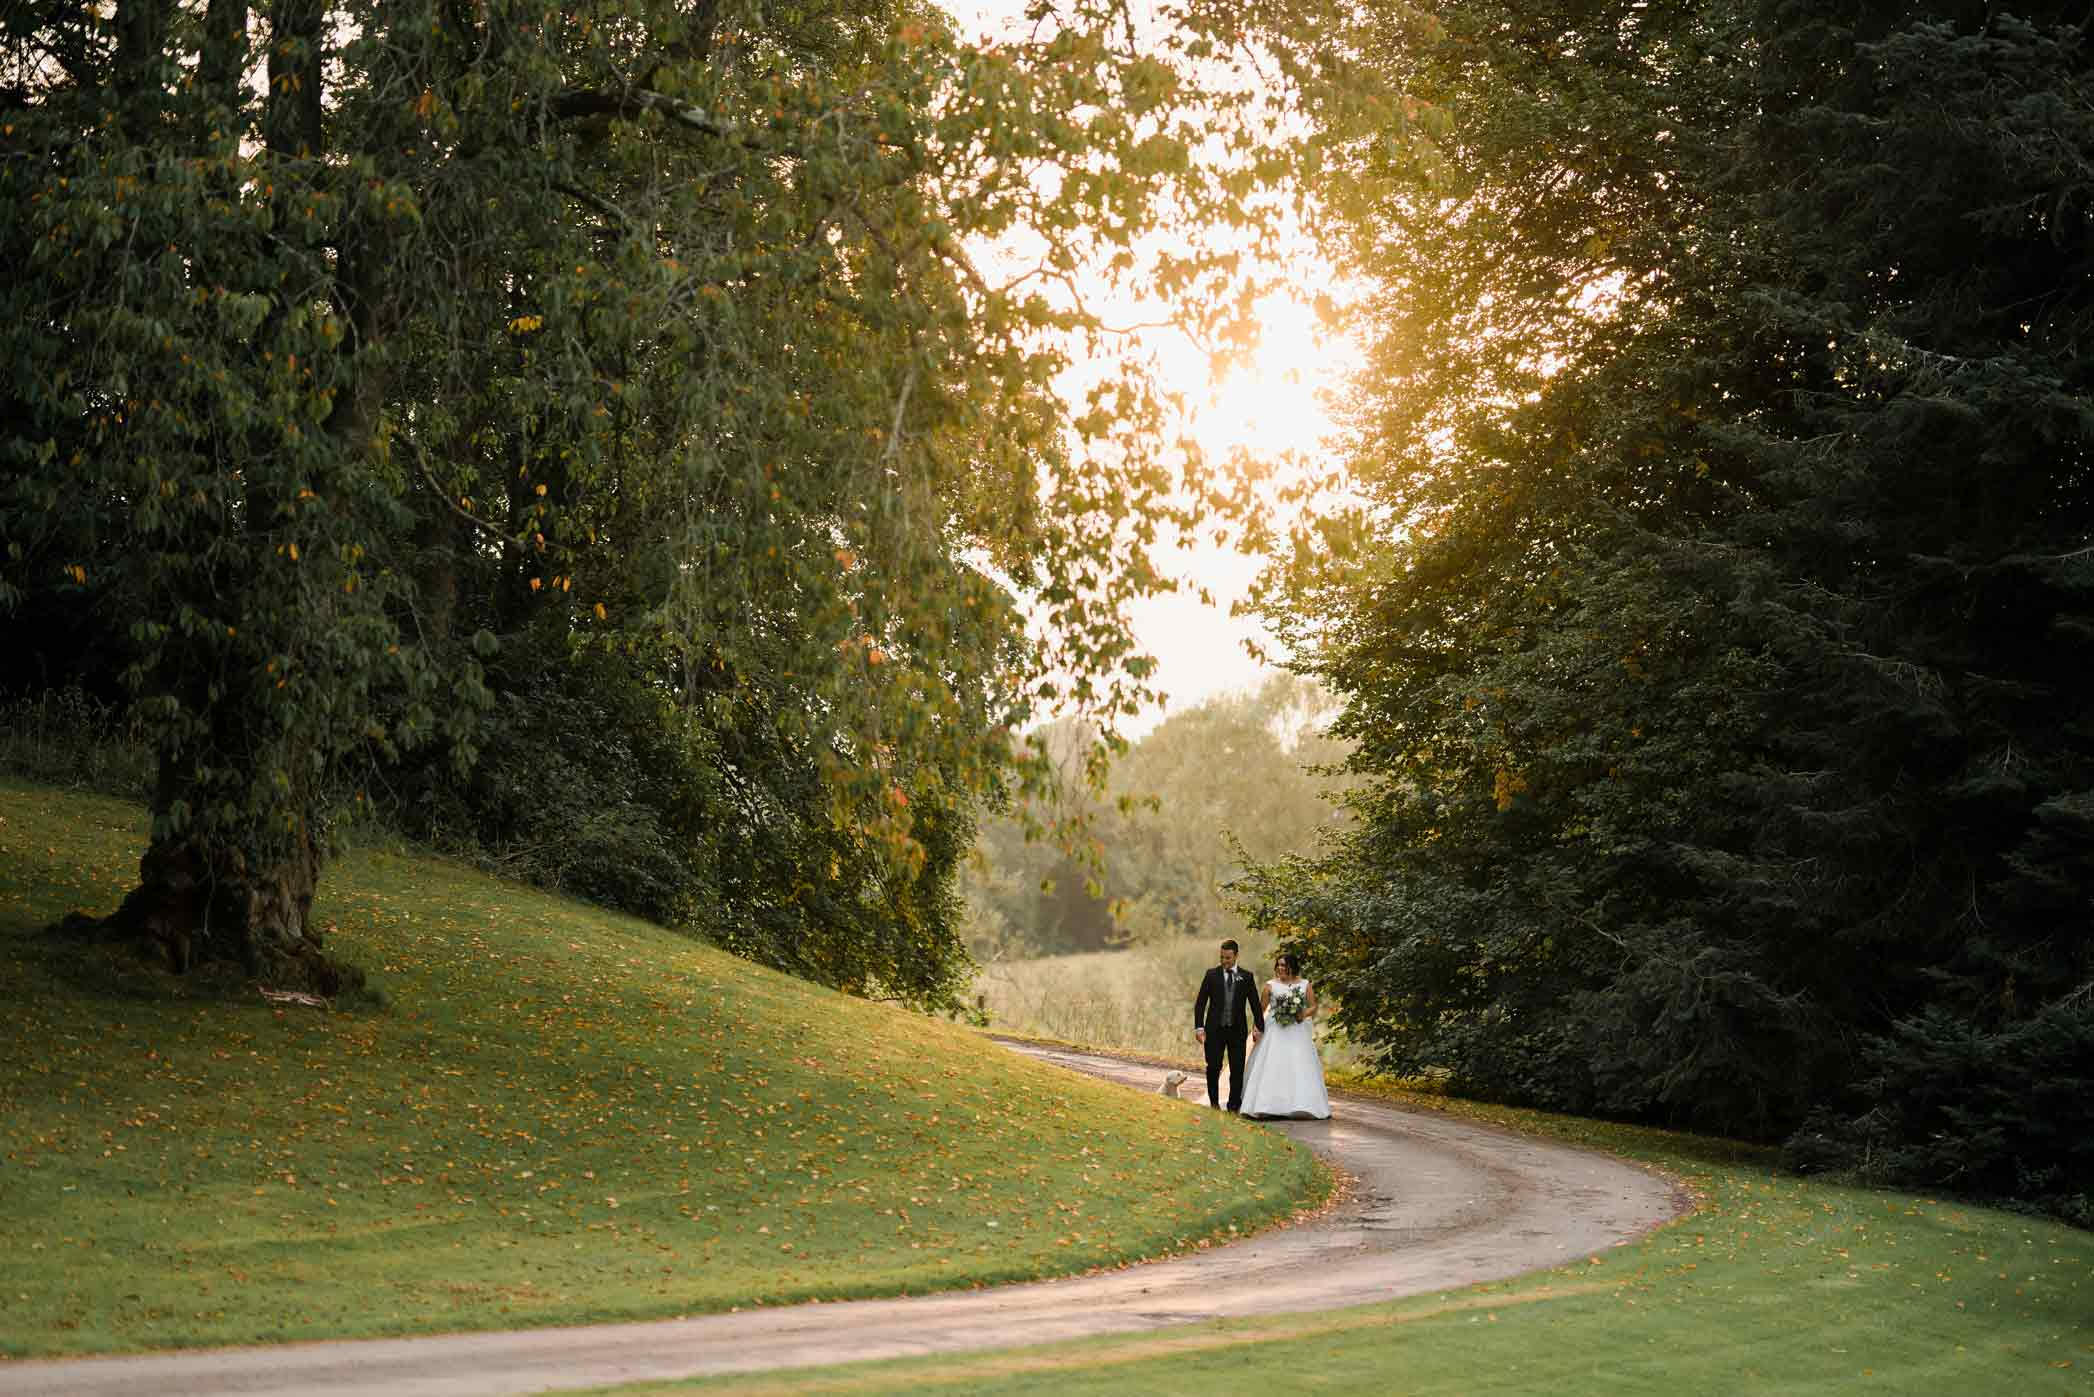 Sunlit wedding photo of bride and groom - South Wales Wedding Photography